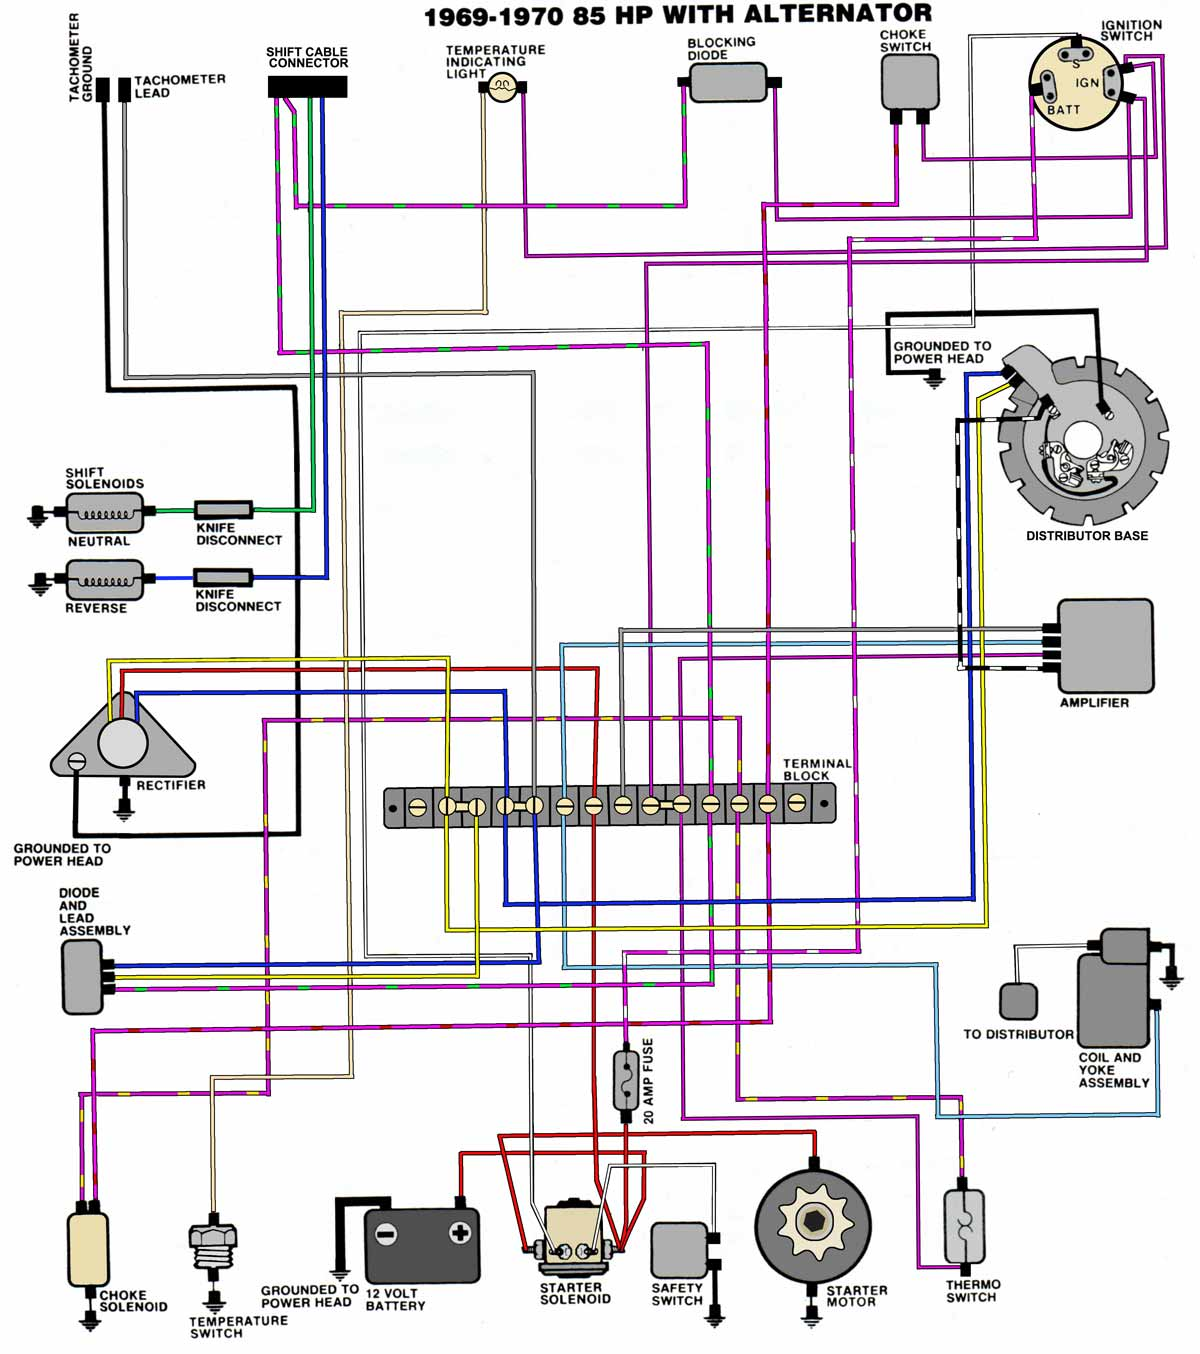 johnson outboards wiring electrical diagram schematics 85 hp evinrude water pump johnson boat wiring diagram easy wiring diagrams \\u2022 johnson evinrude wiring harness johnson outboards wiring